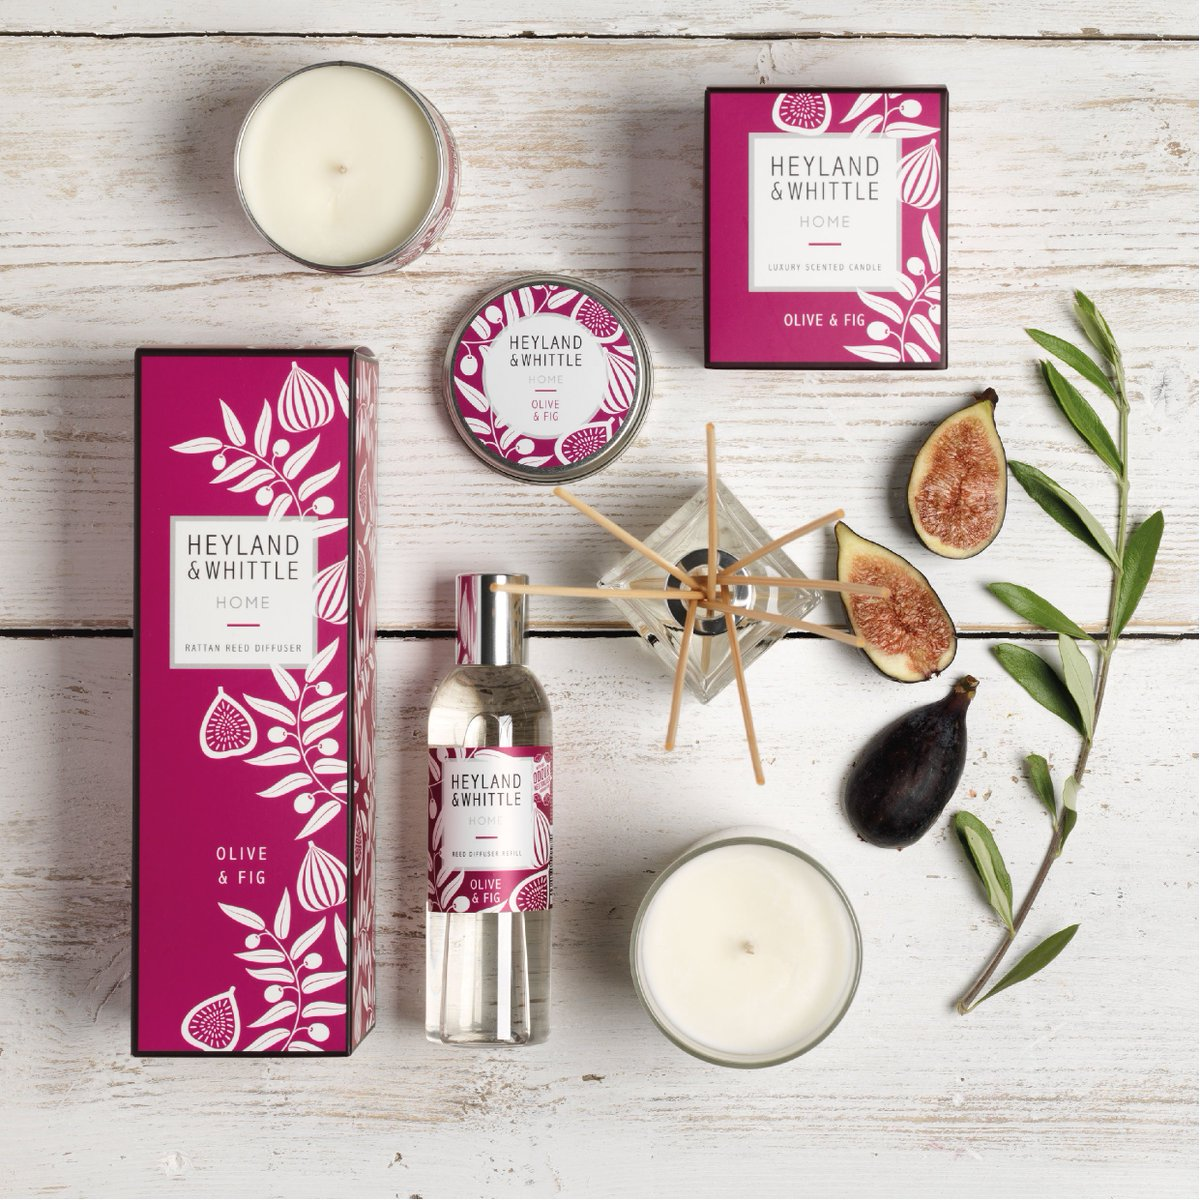 It's #competition time! For one hour you have the chance to #win a gorgeous Olive & Fig #CandleInATin! Tag a friend to enter. Best of luck to all!#WinItWednesday #Giveaway #WednesdayMotivation #HomeFragrance #TagAFriend #LikeToWin #Gifting #smellsamazing #ScentedCandle